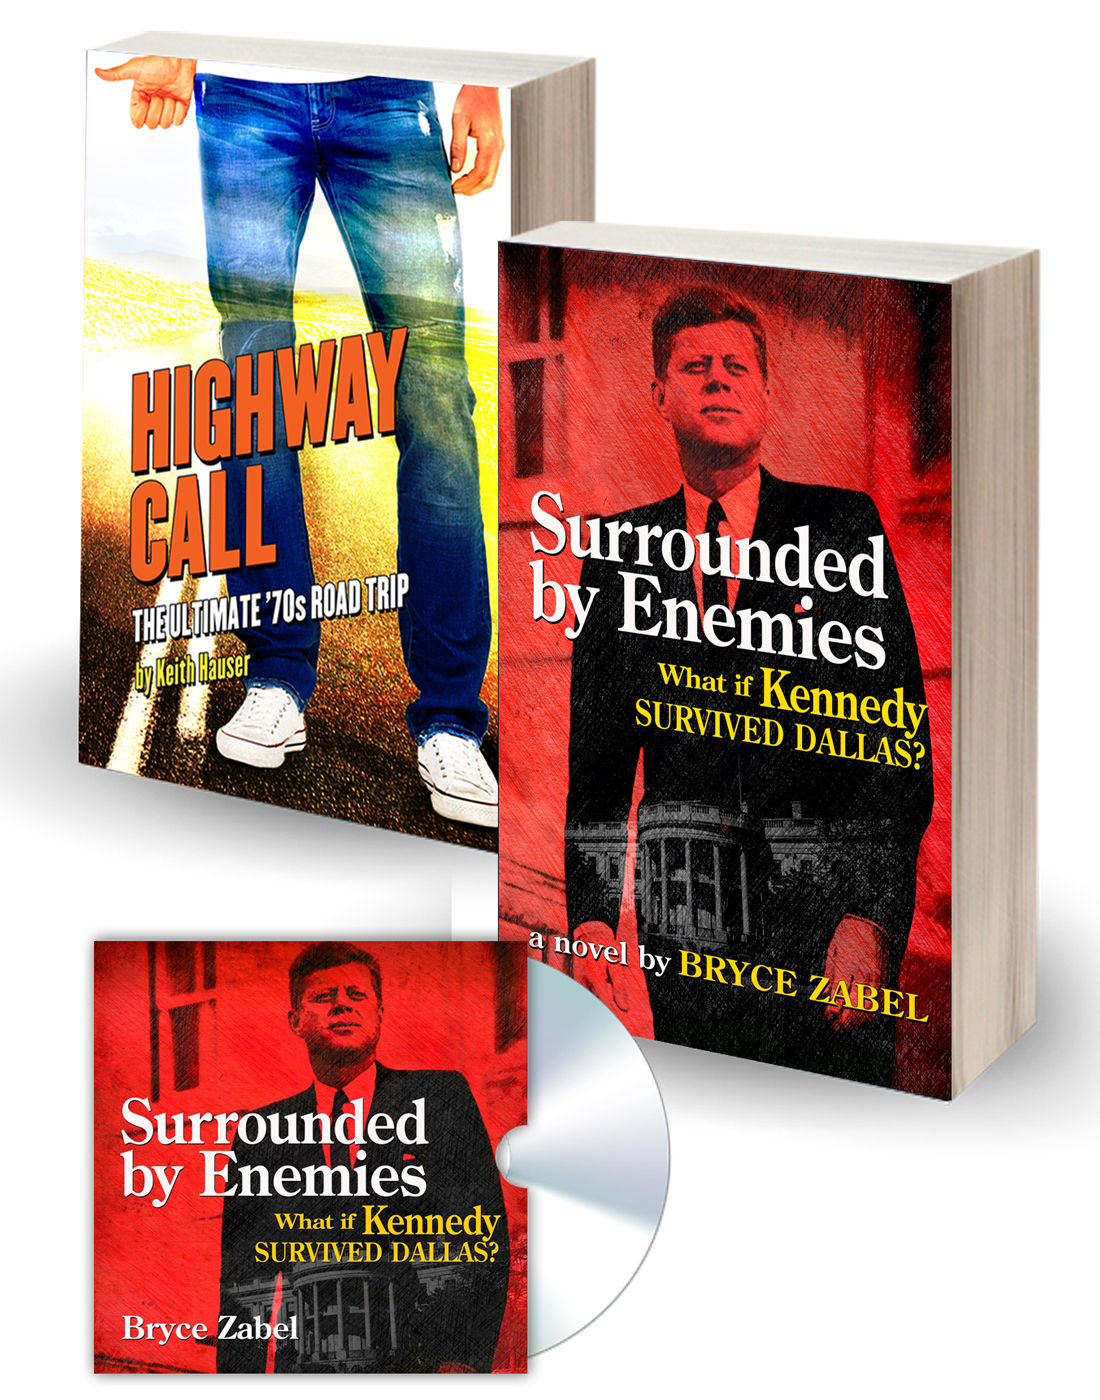 Highway Call and Surrounded by Enemies books